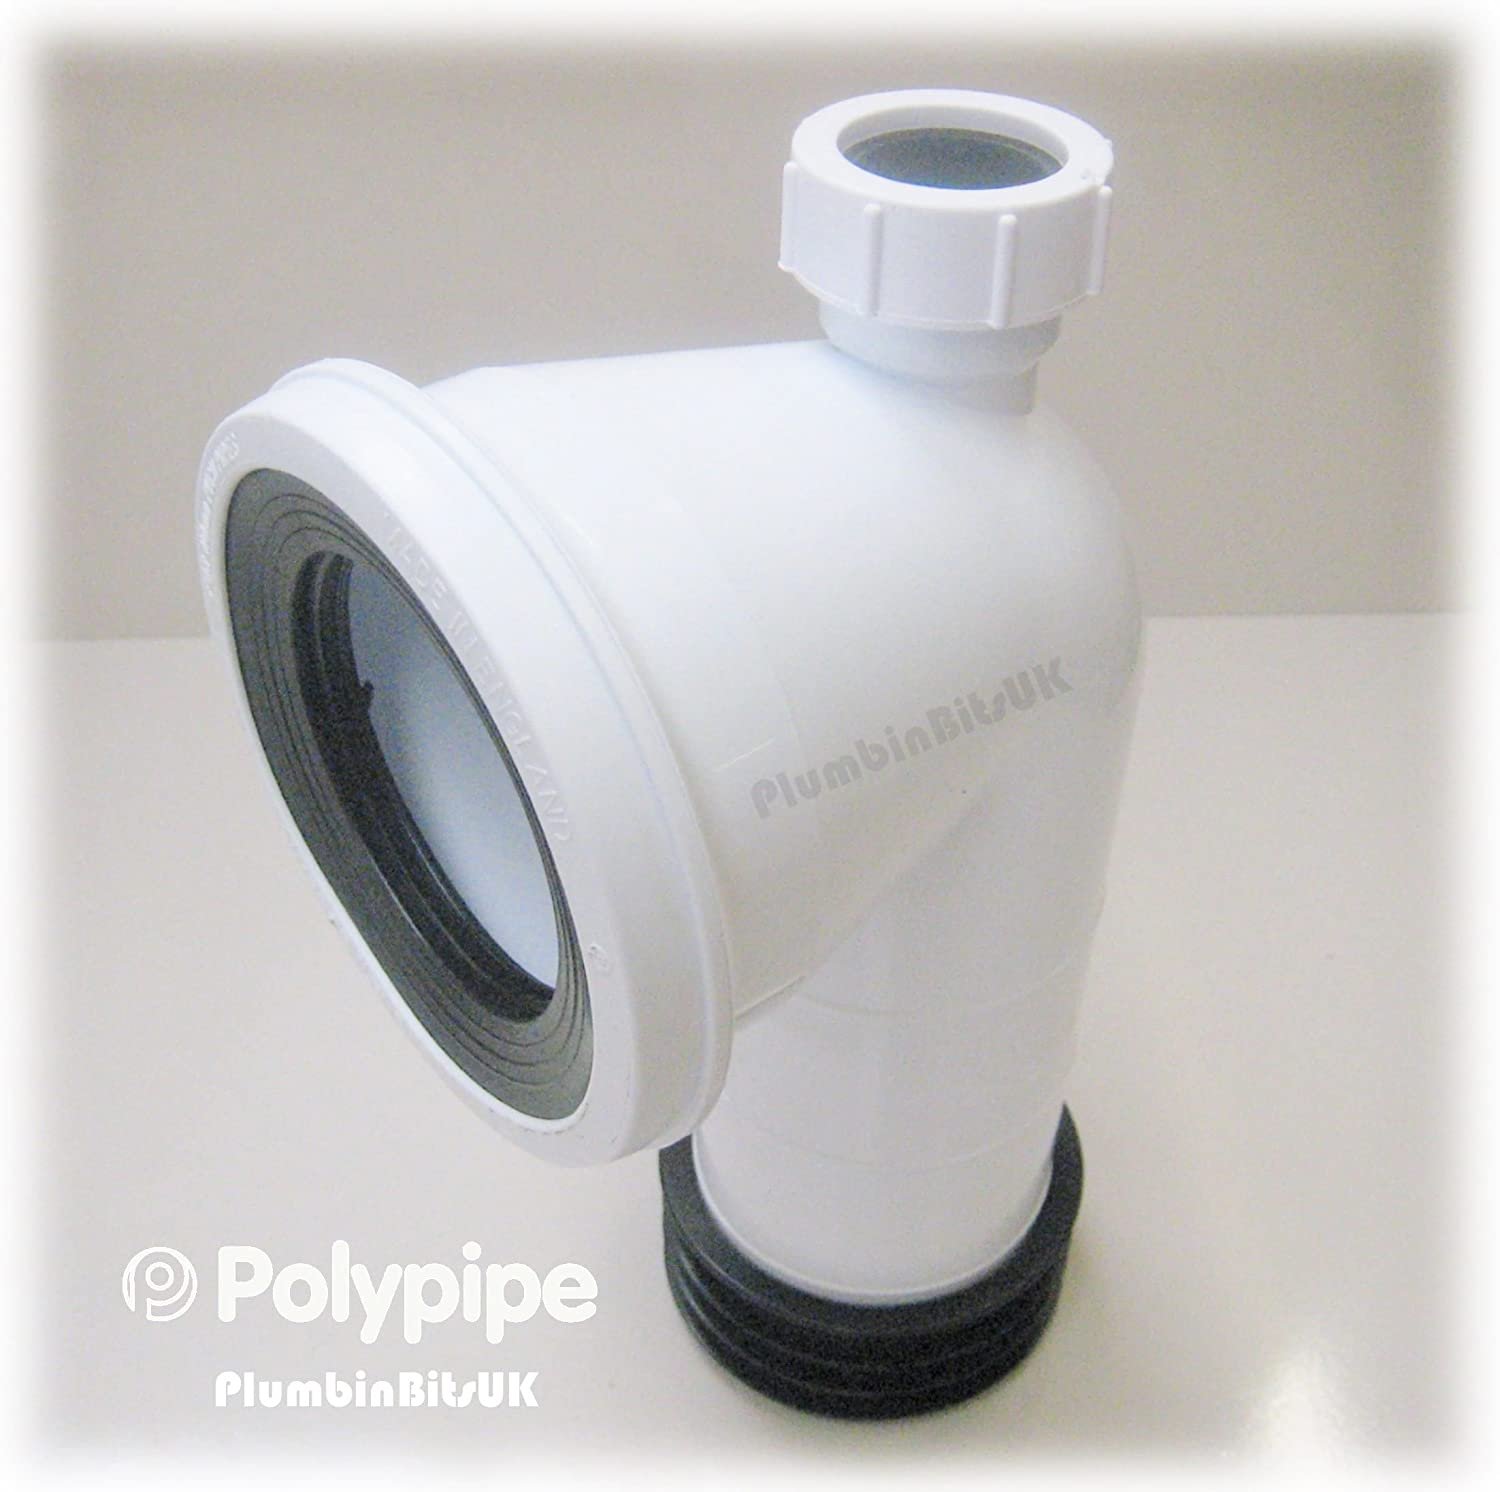 Polypipe Kwickfit 4' 110mm Bent 90 degree WC Toilet Pan Connector with 32mm 1-1/4' Boss Inlet White SK49